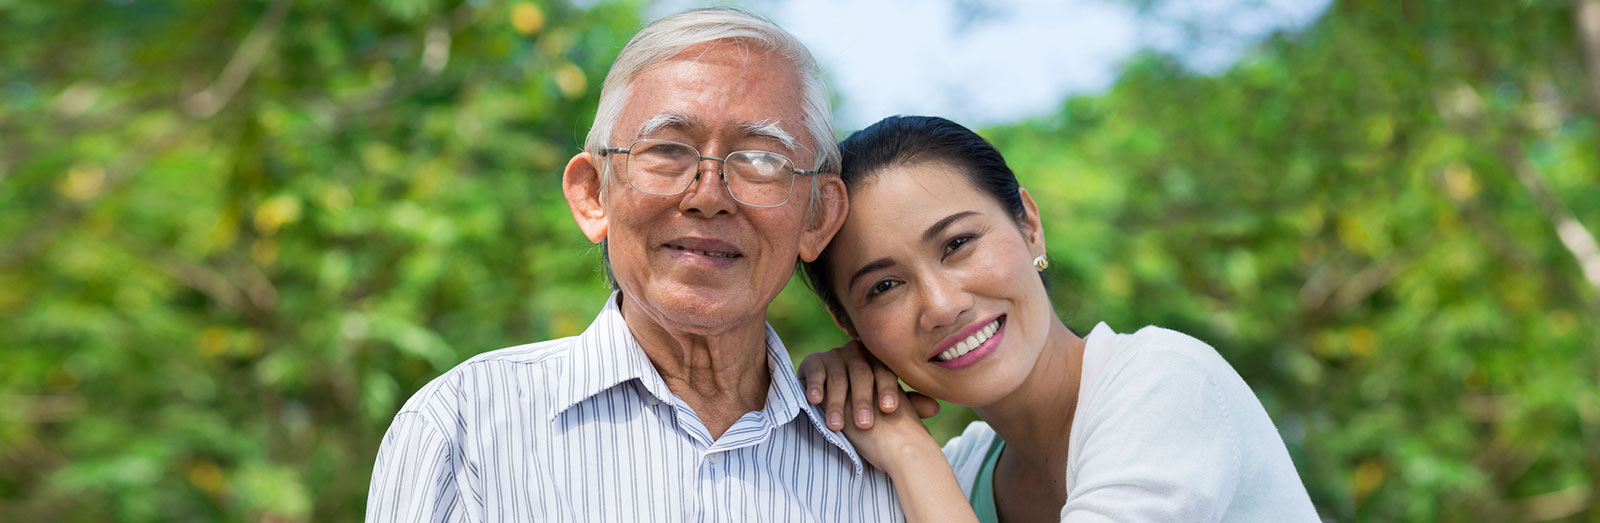 A young woman and her father, smiling outside